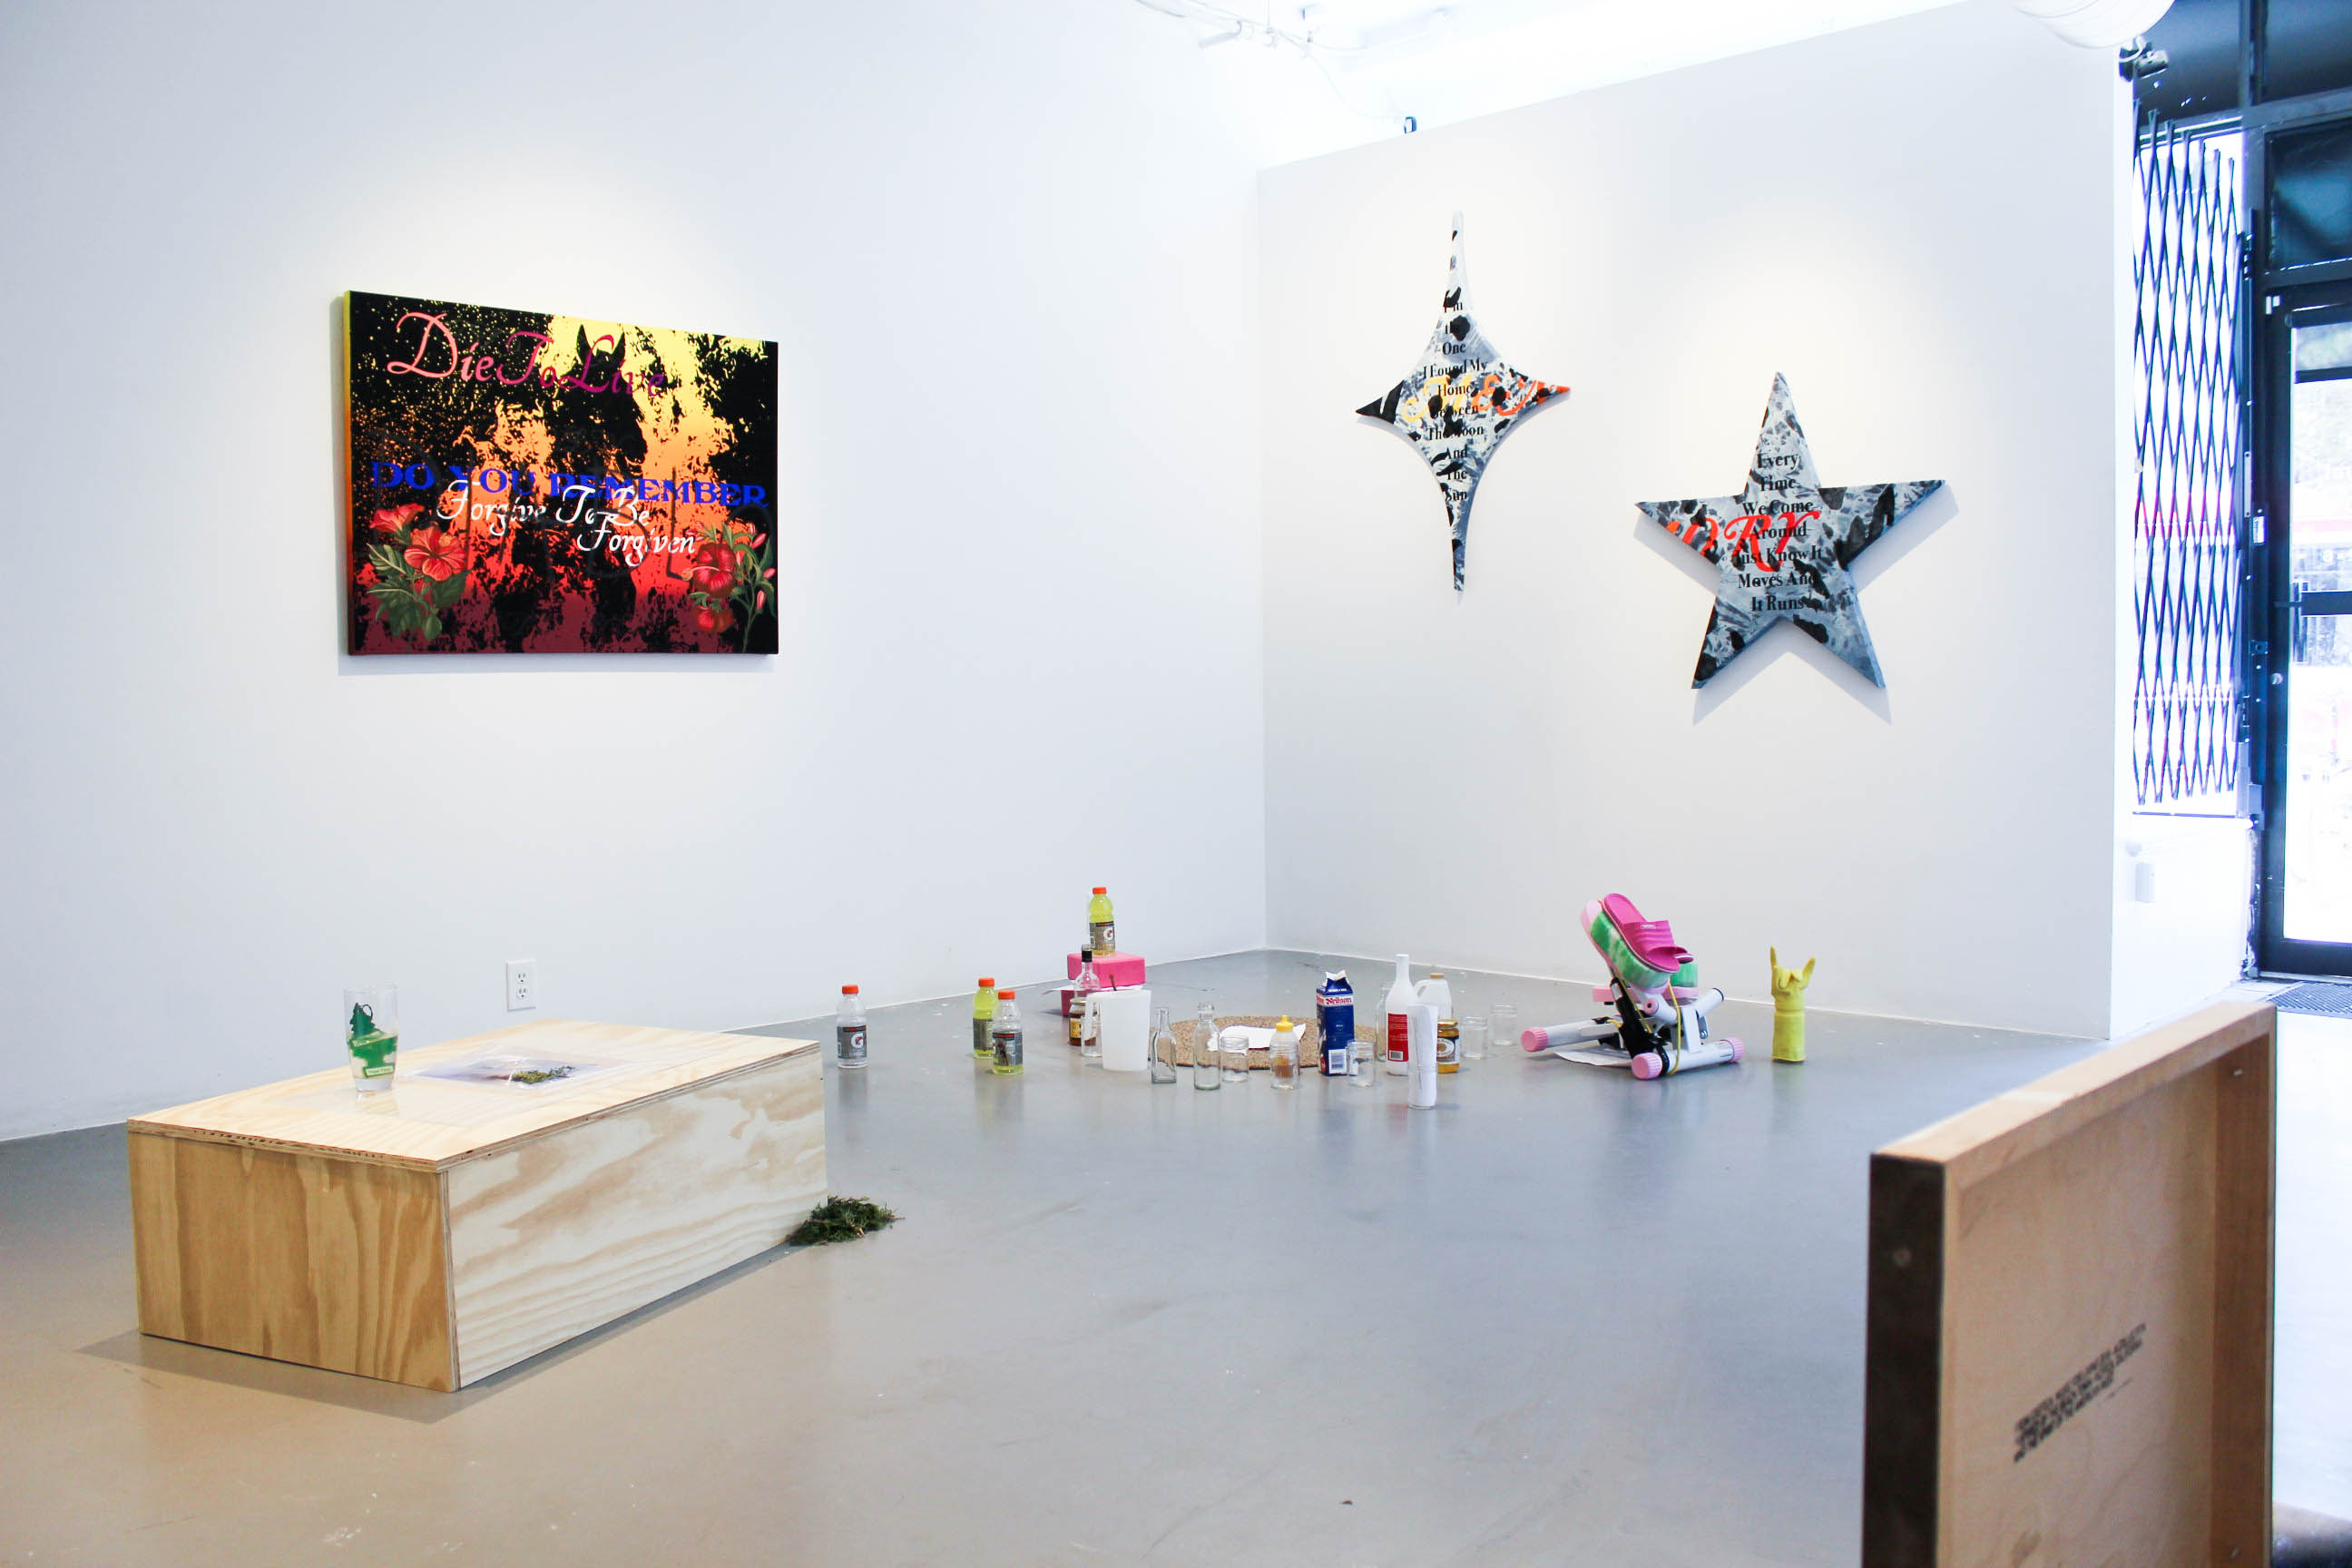 An installation view of an art exhibition in a bright gallery space. Rectangular and star-shaped paintings hang on the walls, and a variety of objects are on the floor, including a wooded crate, plastic drink bottles, cleaning products, and exercise equipment.